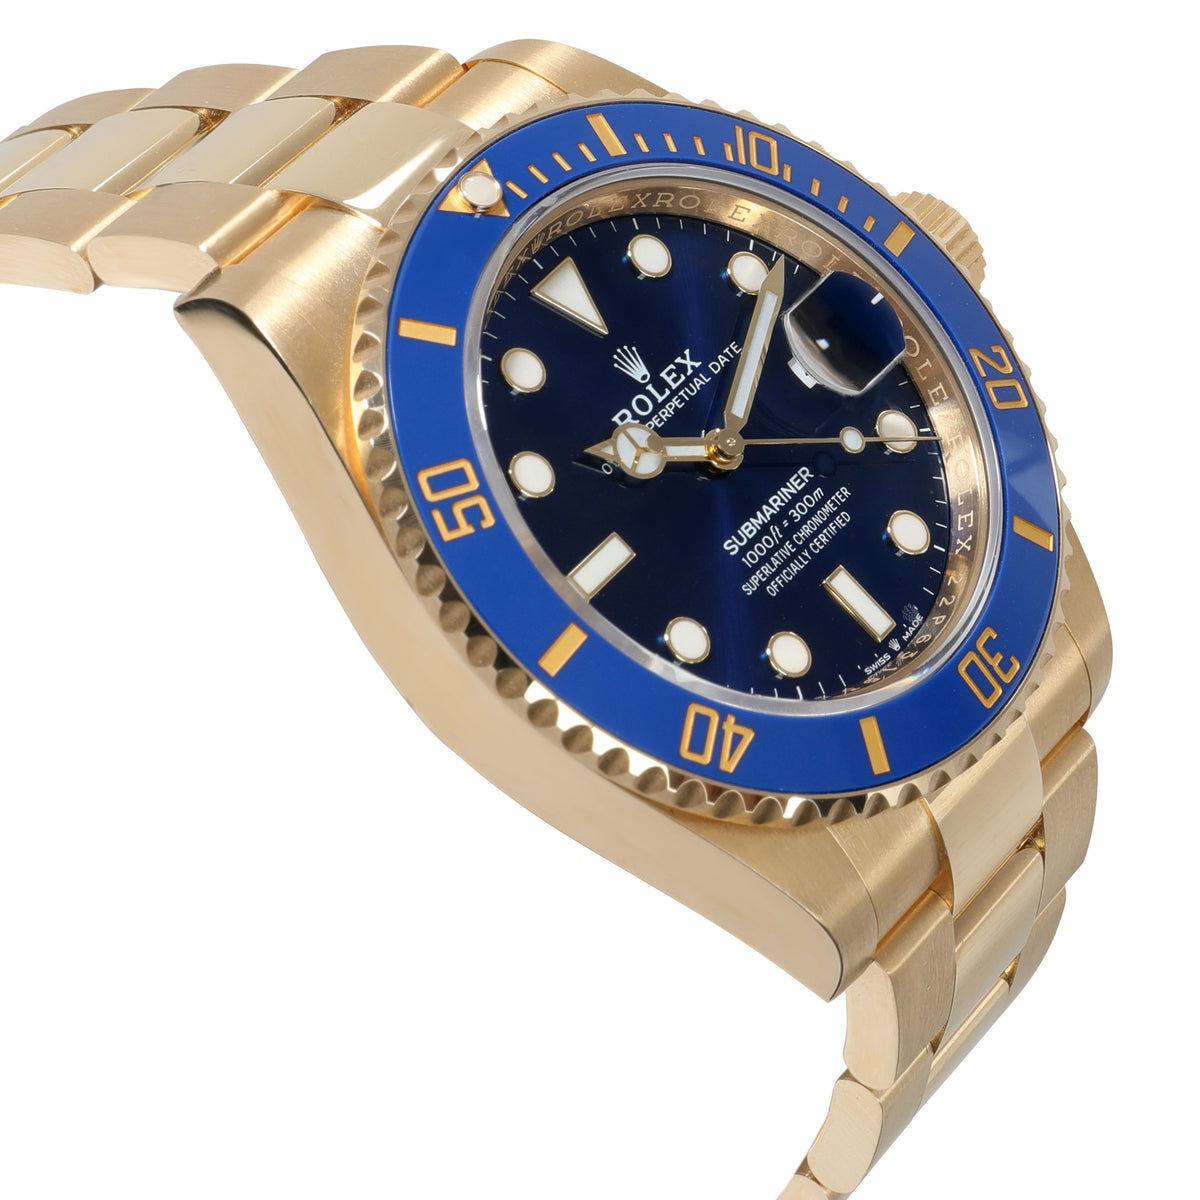 Rolex Submariner 126618LB Men's Watch in 18kt Yellow Gold